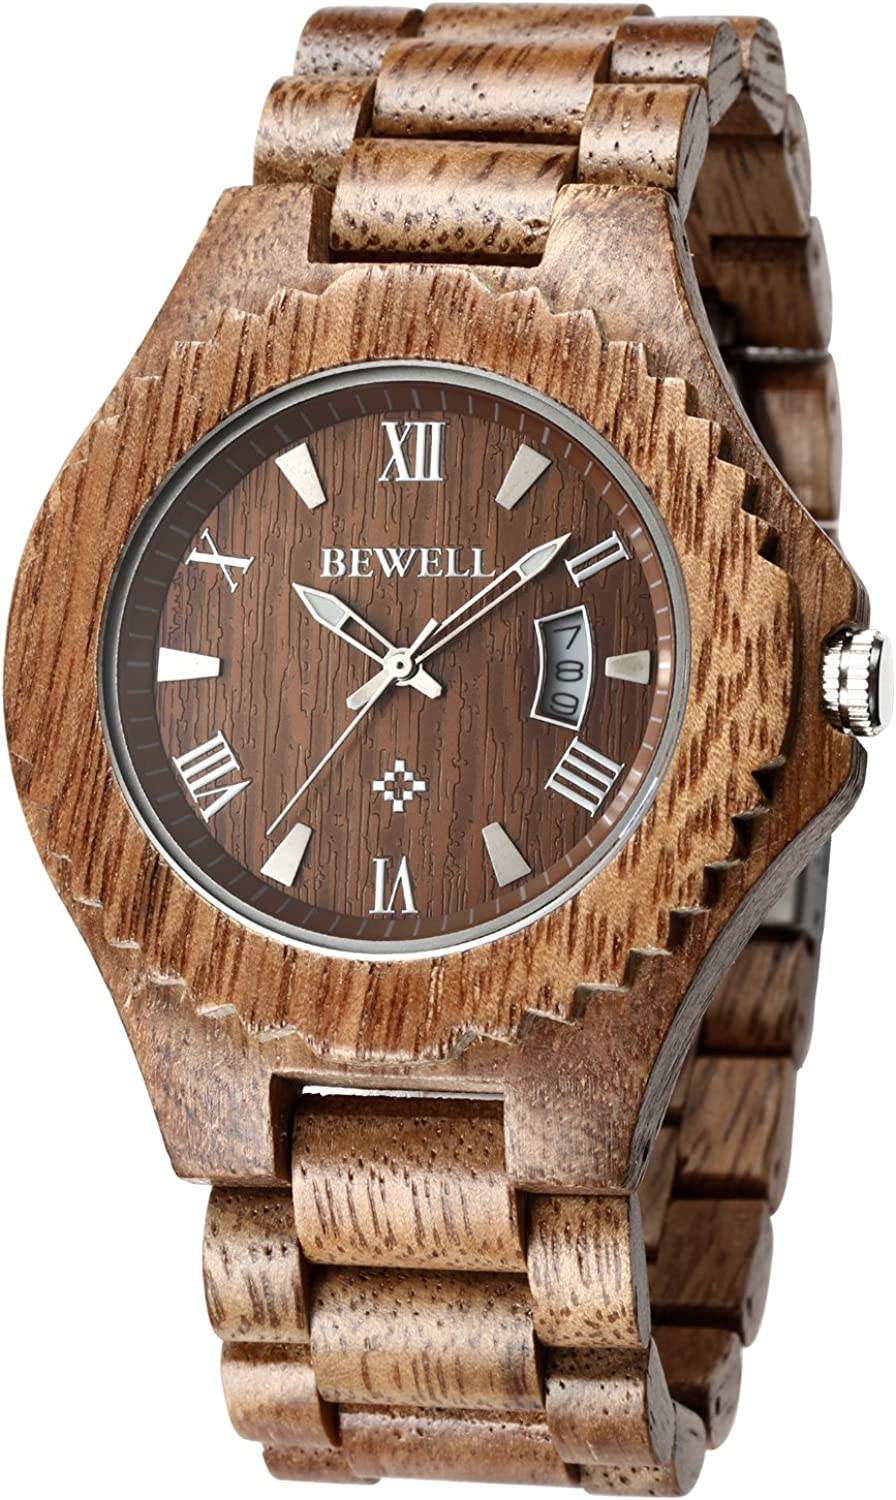 Bewell ZS-W129A Wood Watches for Men Lightweight Wooden Band Lumious Pointer Quartz Analog Wrist Watch